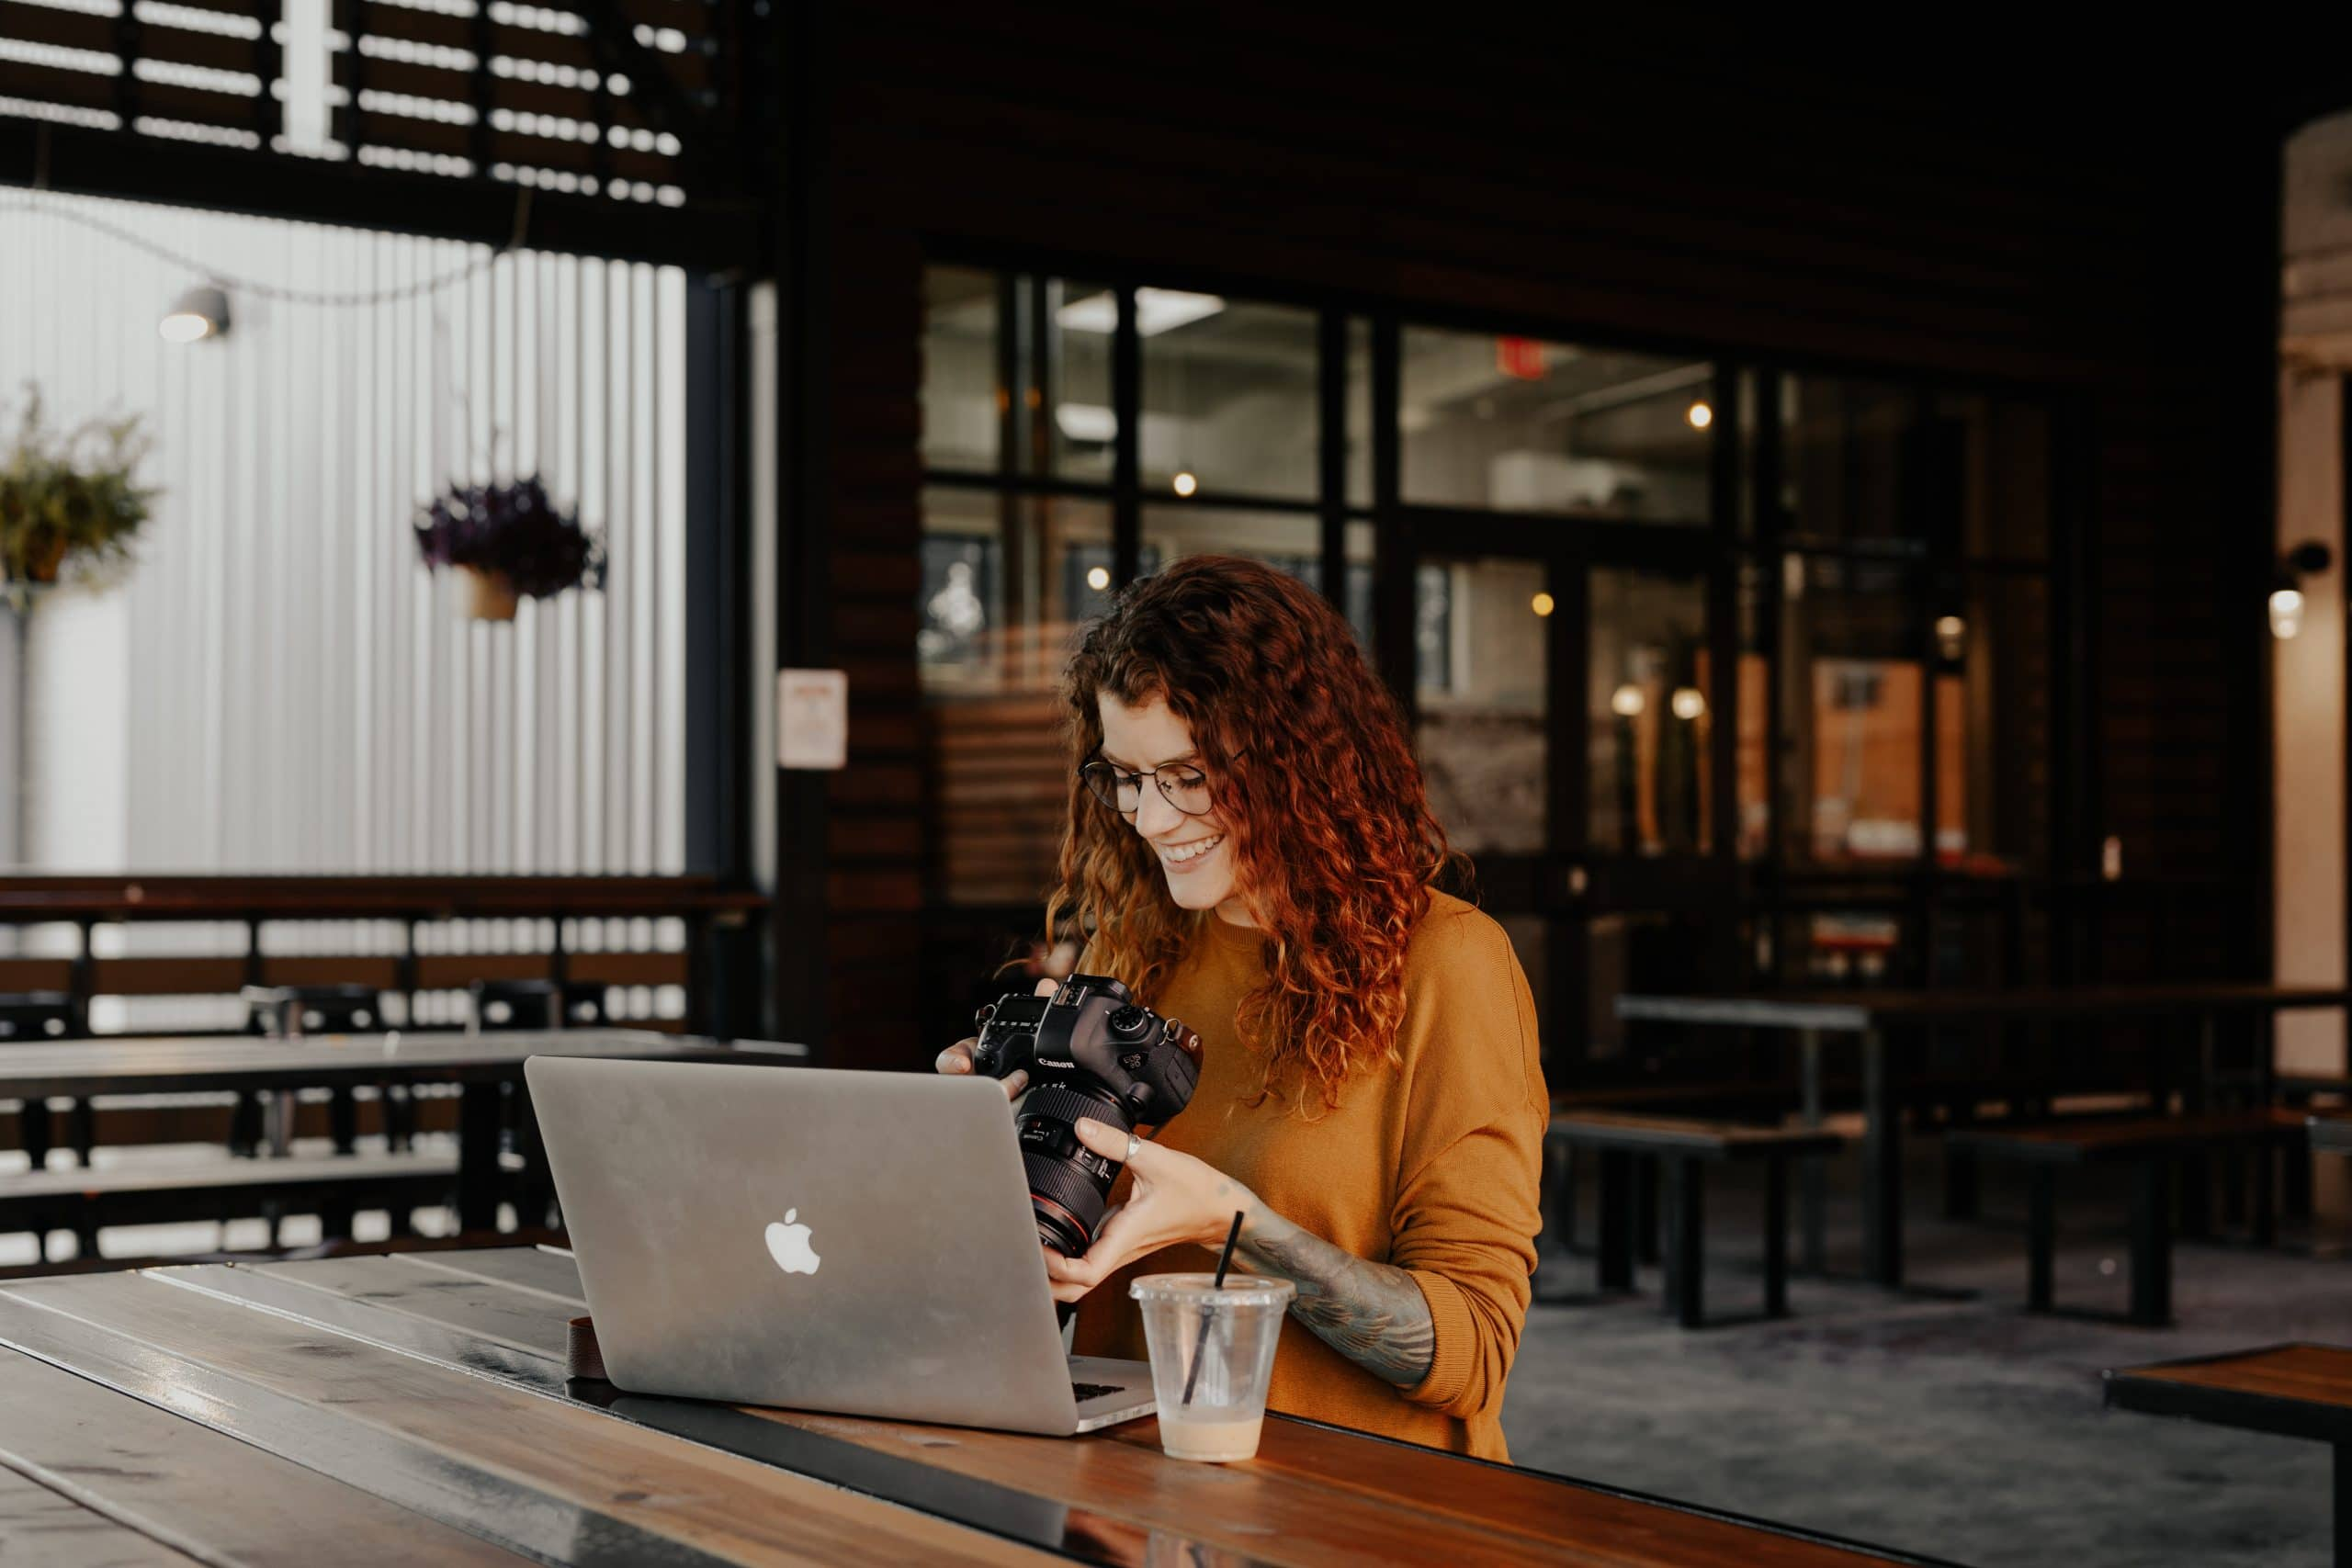 Woman editing photos - How to batch edit in Lightroom